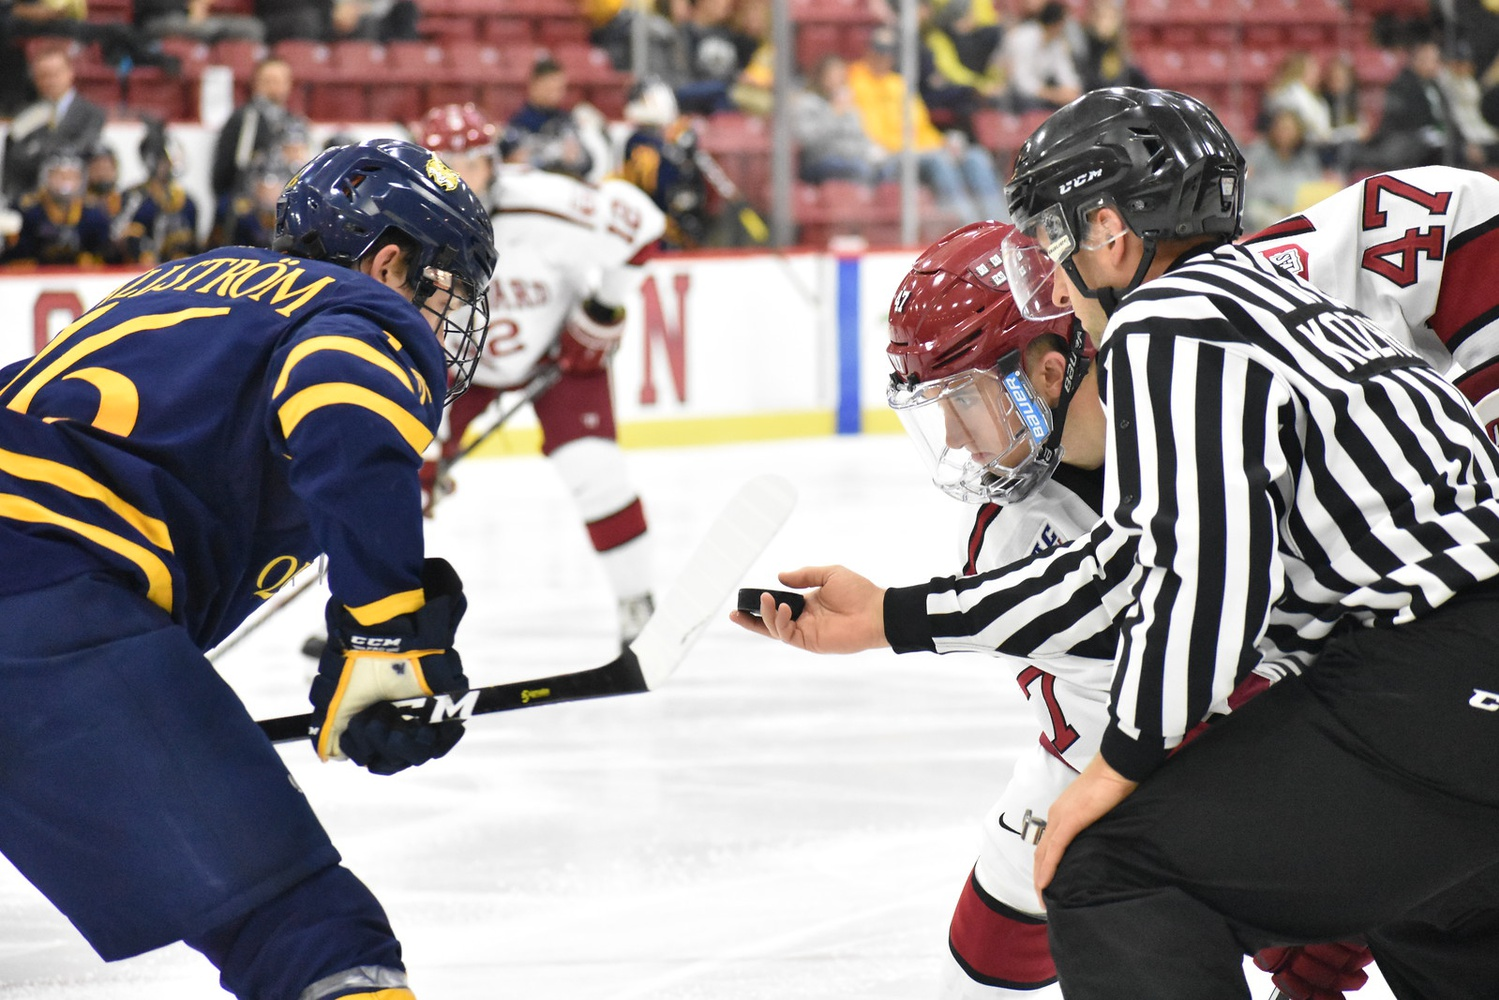 After the Bobcats skated past the Crimson in early November, Harvard outlasted a highly ranked Quinnipiac team on the back of sturdy goaltending.